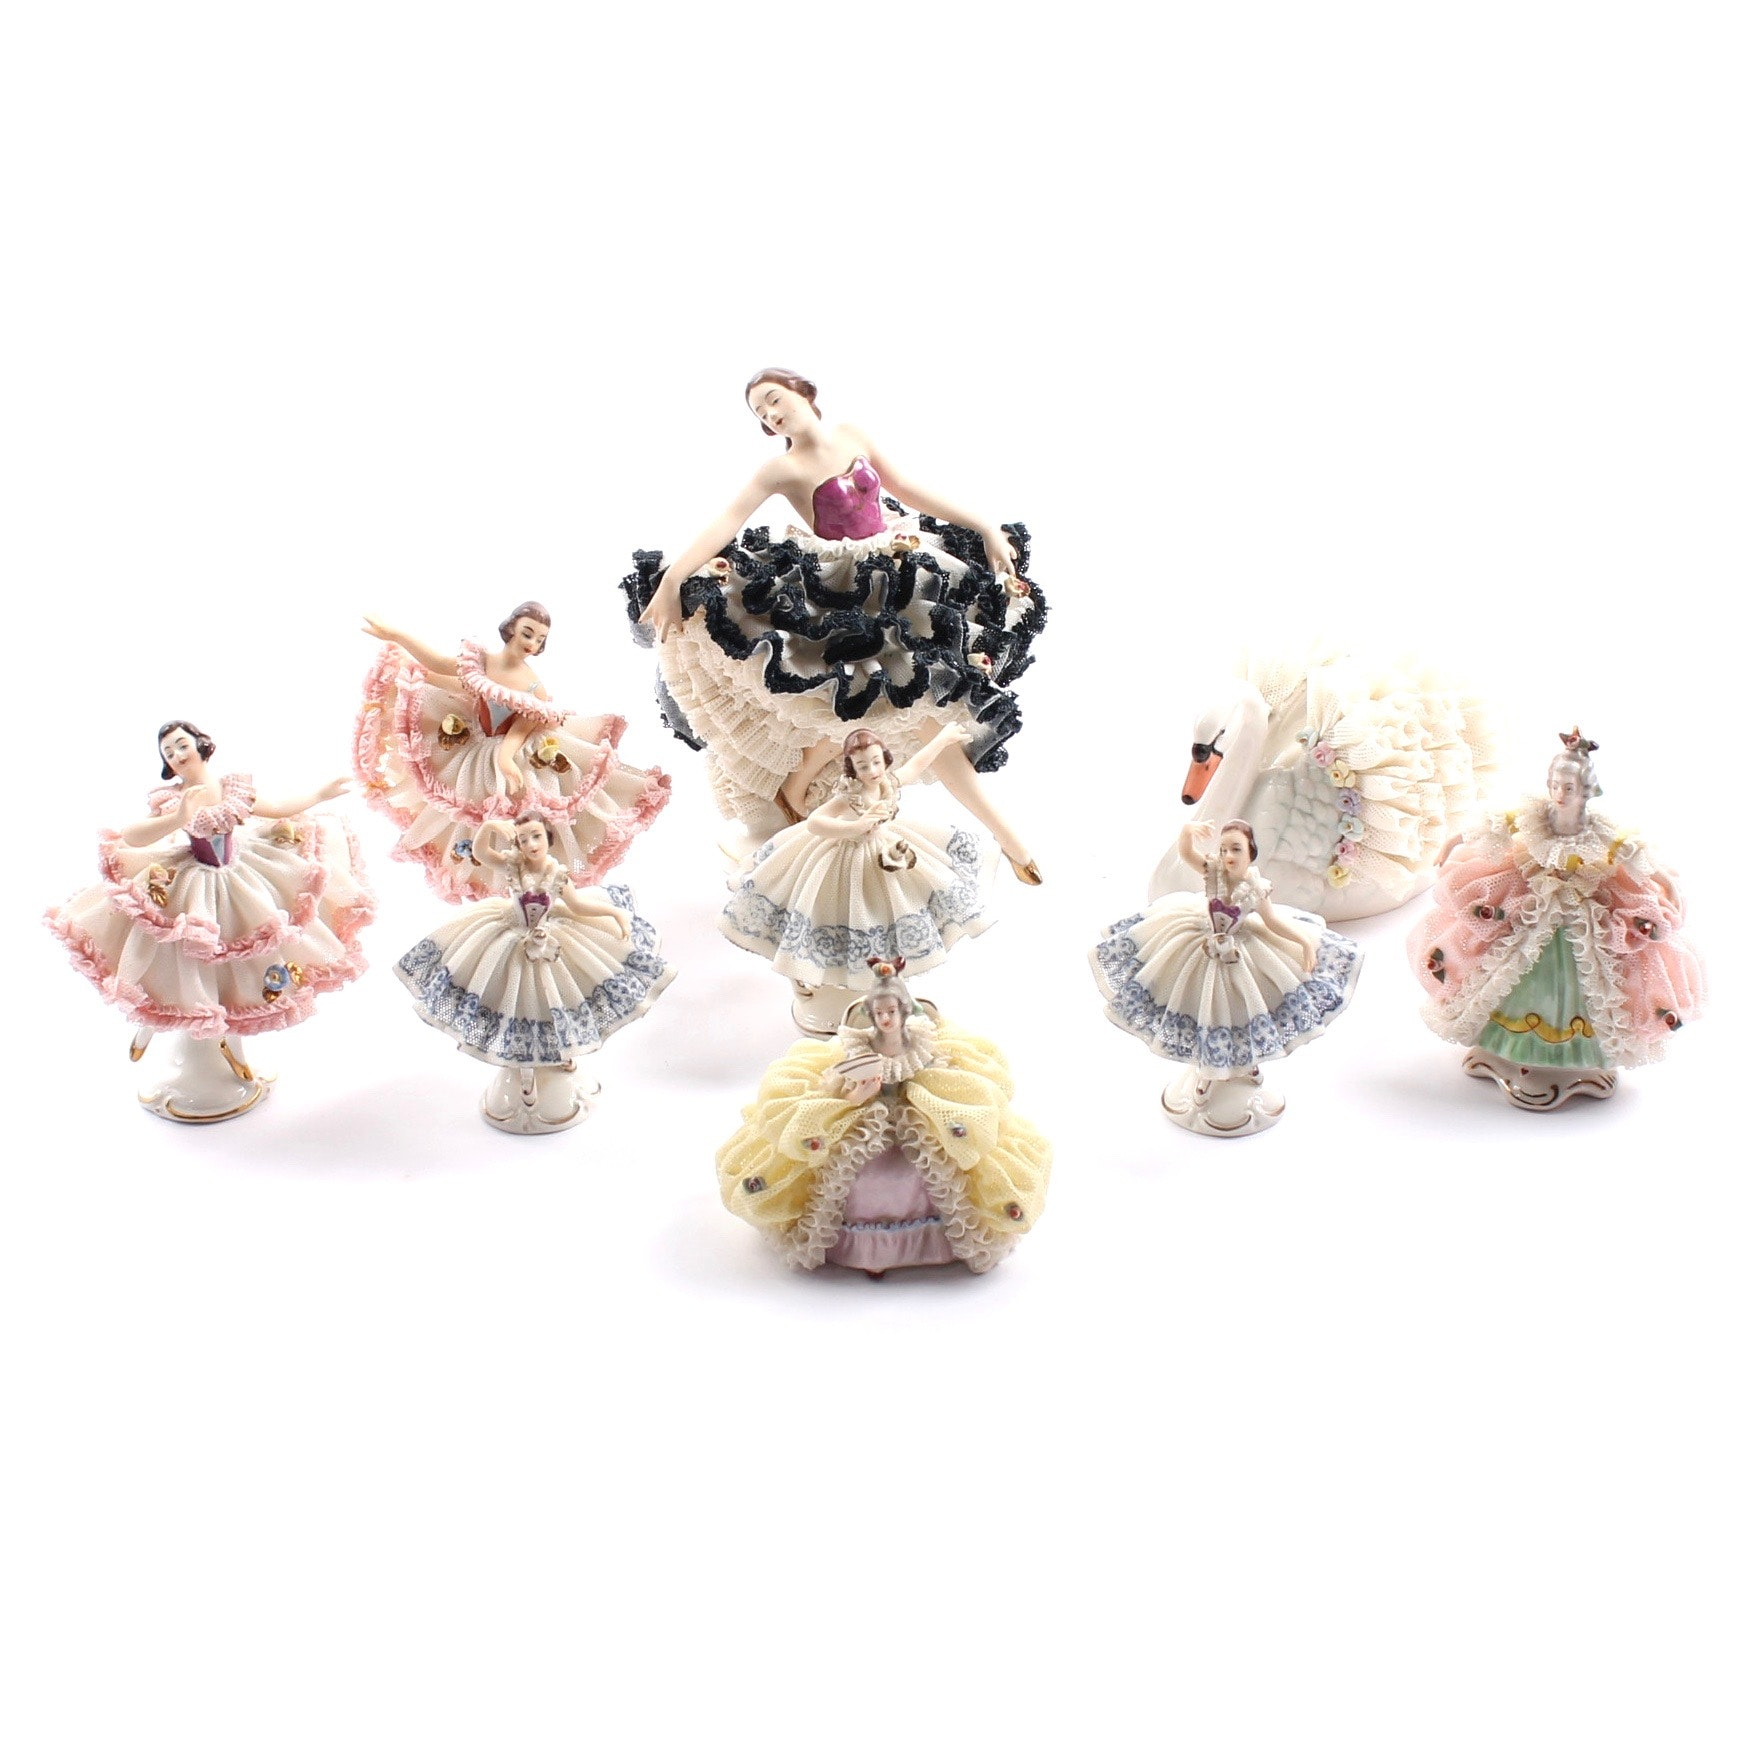 Vintage Dresden Lace Figurines Featuring Muller Volkstedt Irish Lace Swan